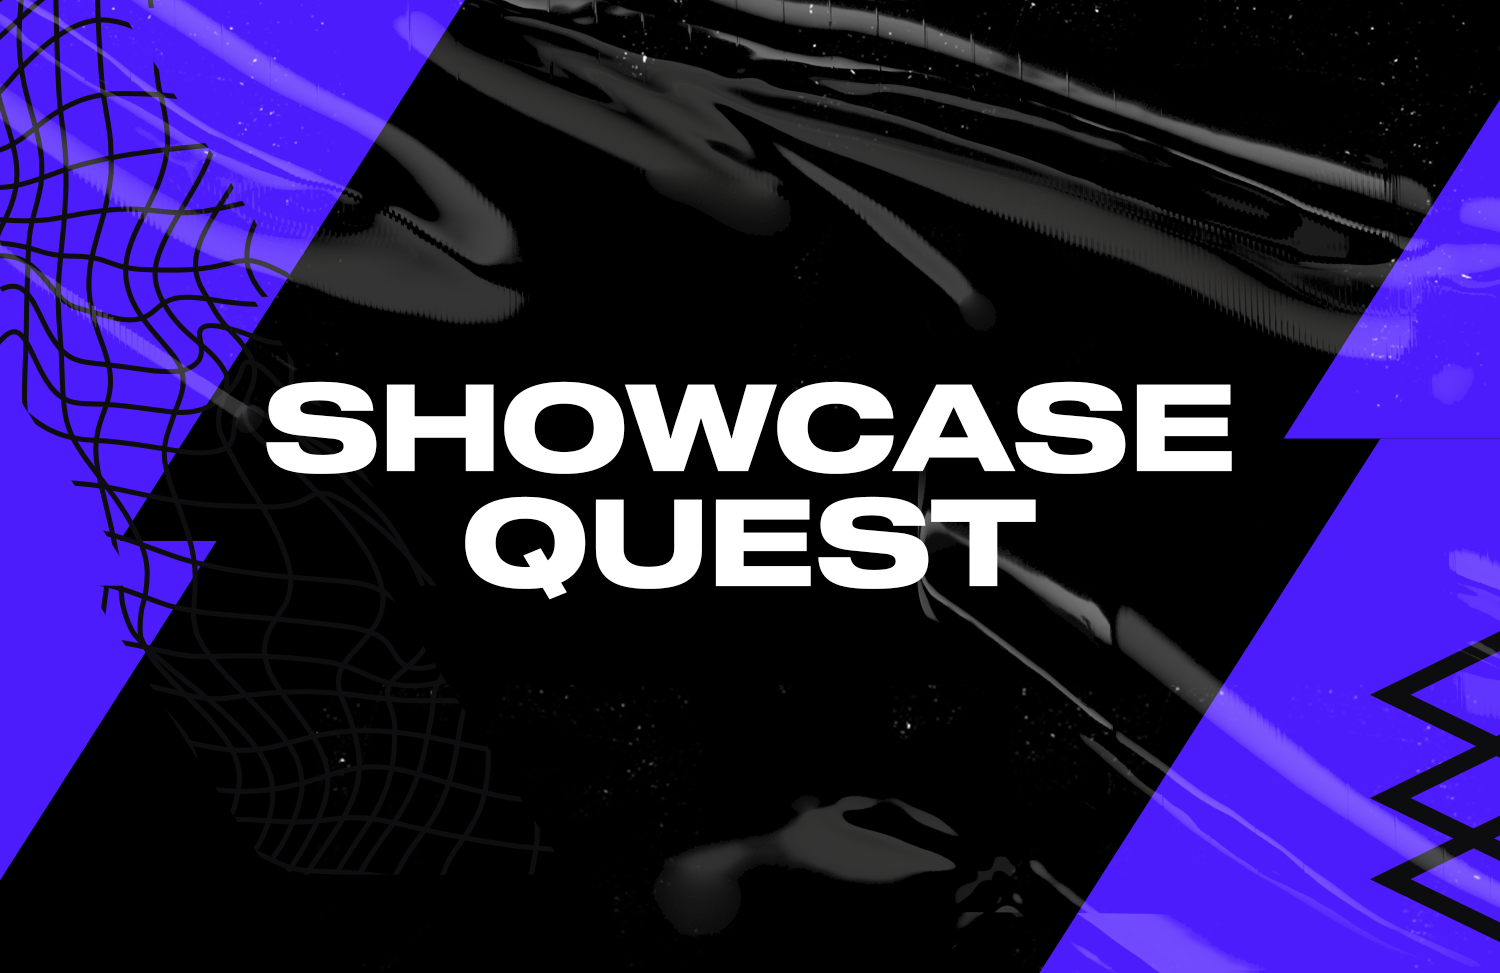 You've seen Challenges and you've seen Showcase Contests. Today, we're excited to introduce Showcase Quests!